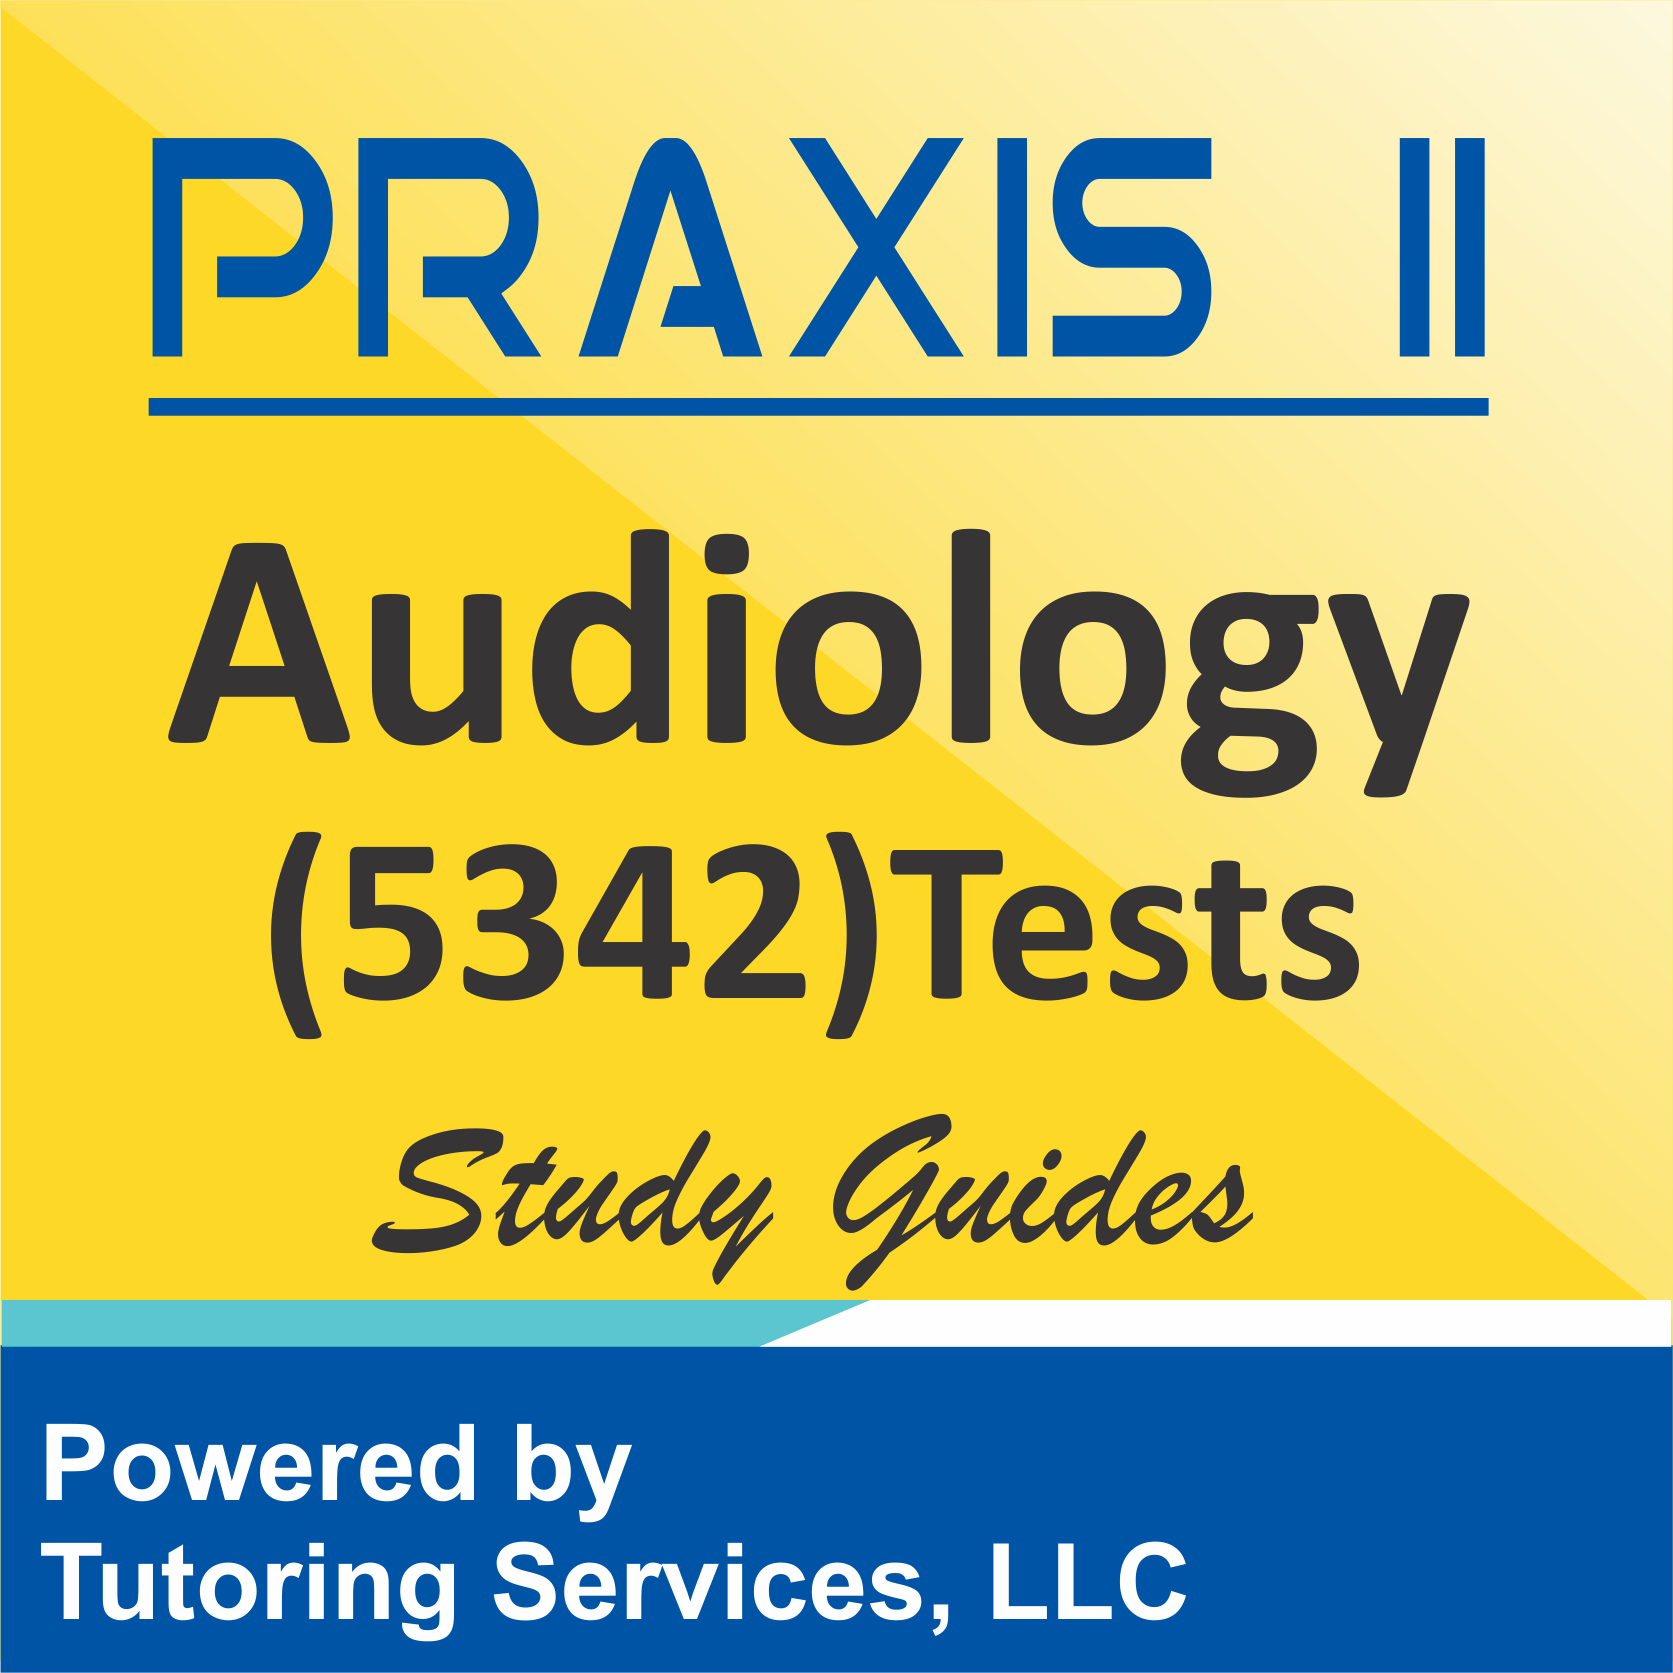 Praxis II Audiology (5342) Examination Information